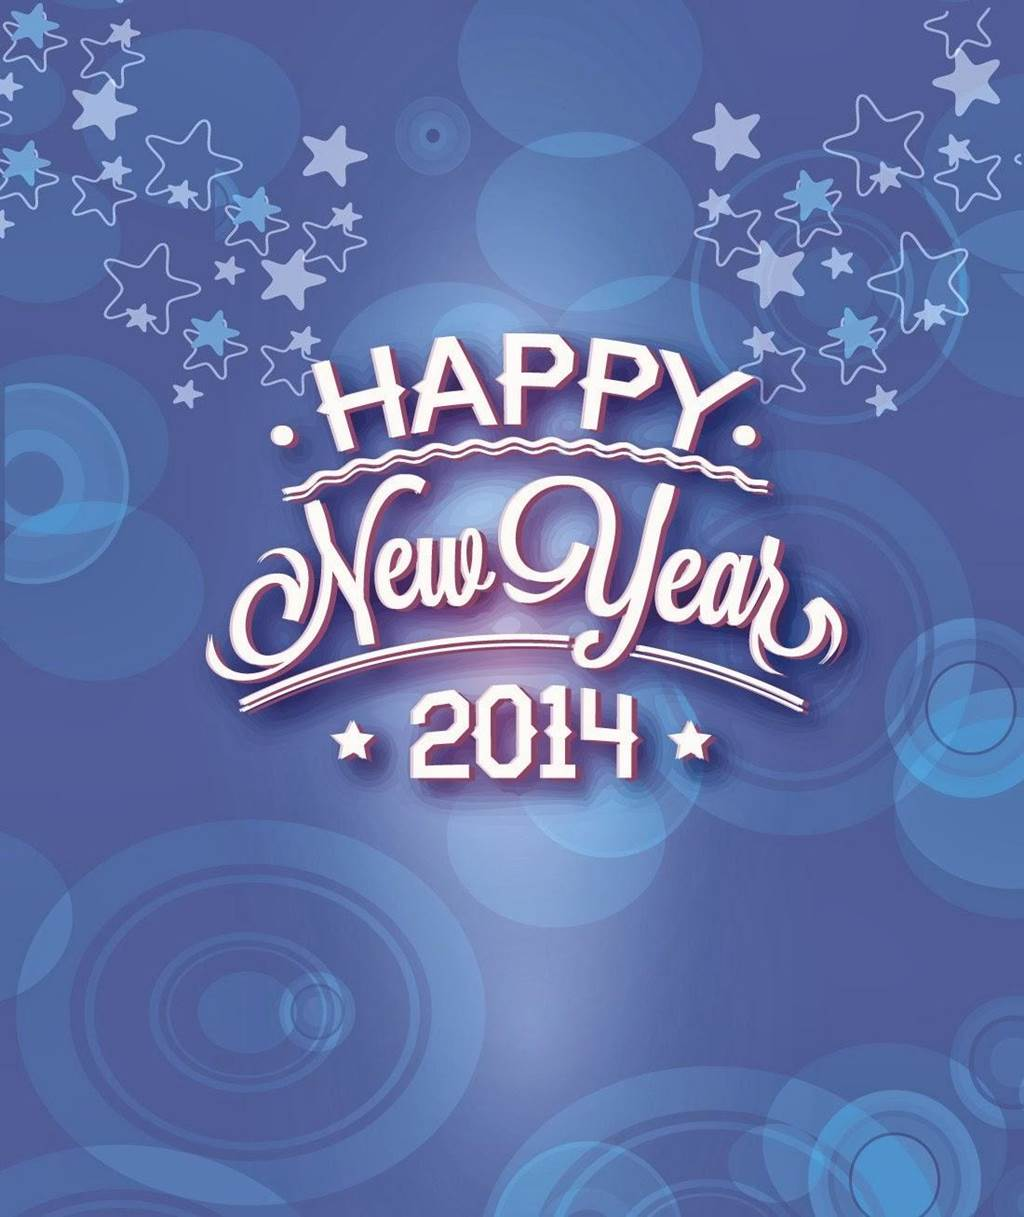 Happy New Year 2014 Wishing Greeting Cards